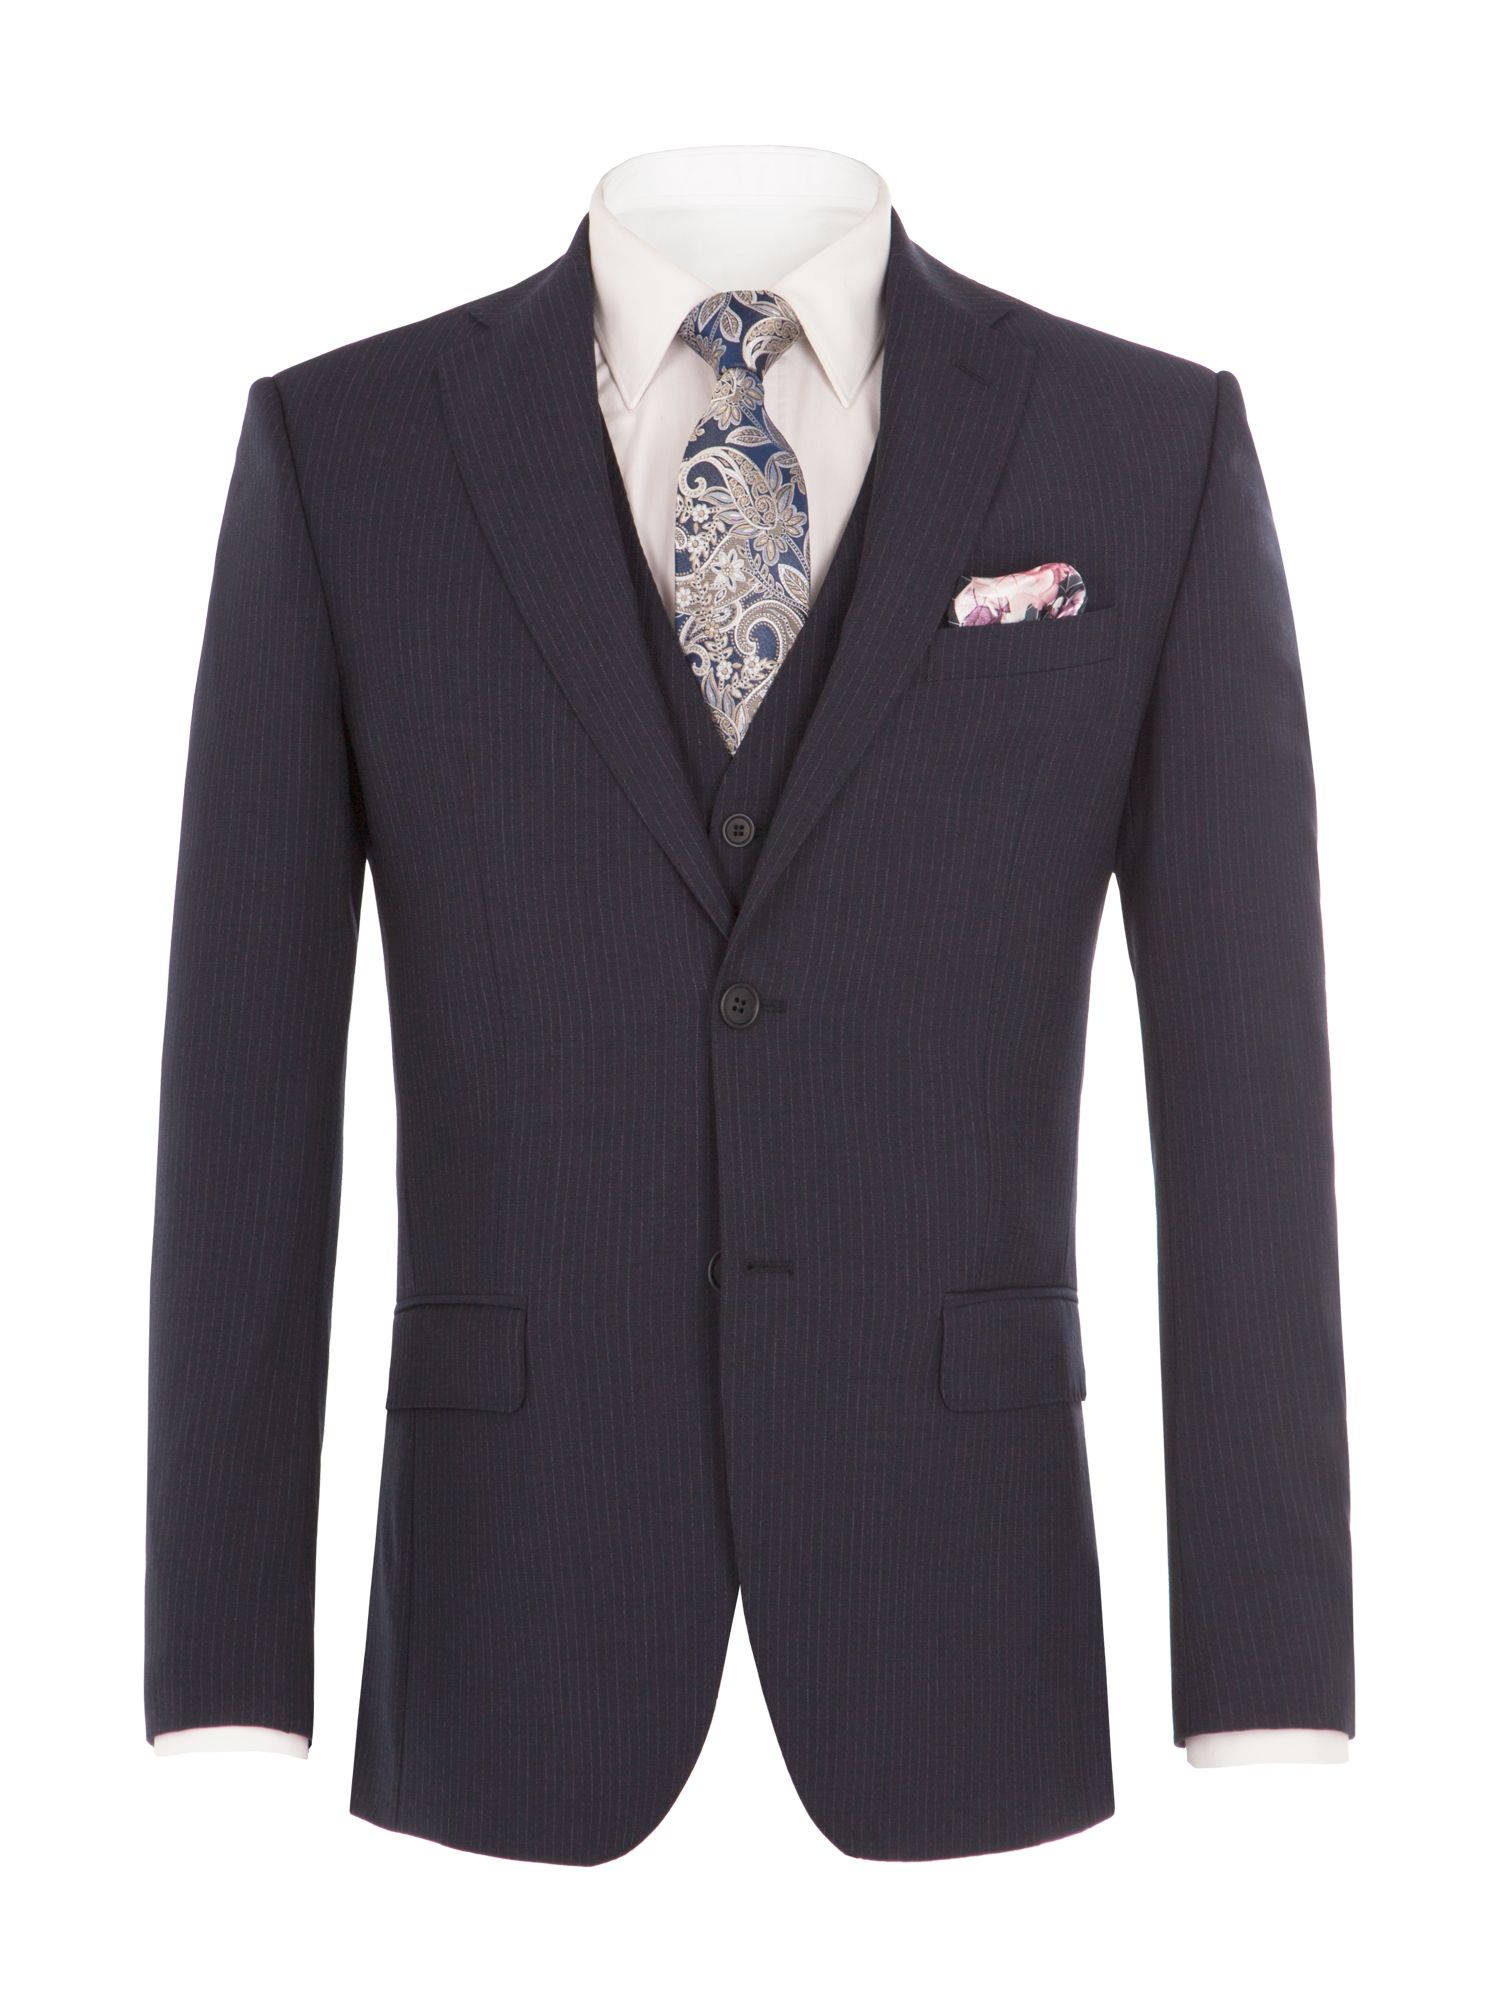 Alexandre of England Men's Alexandre of England Byward Navy Stripe Suit Jacket, Navy